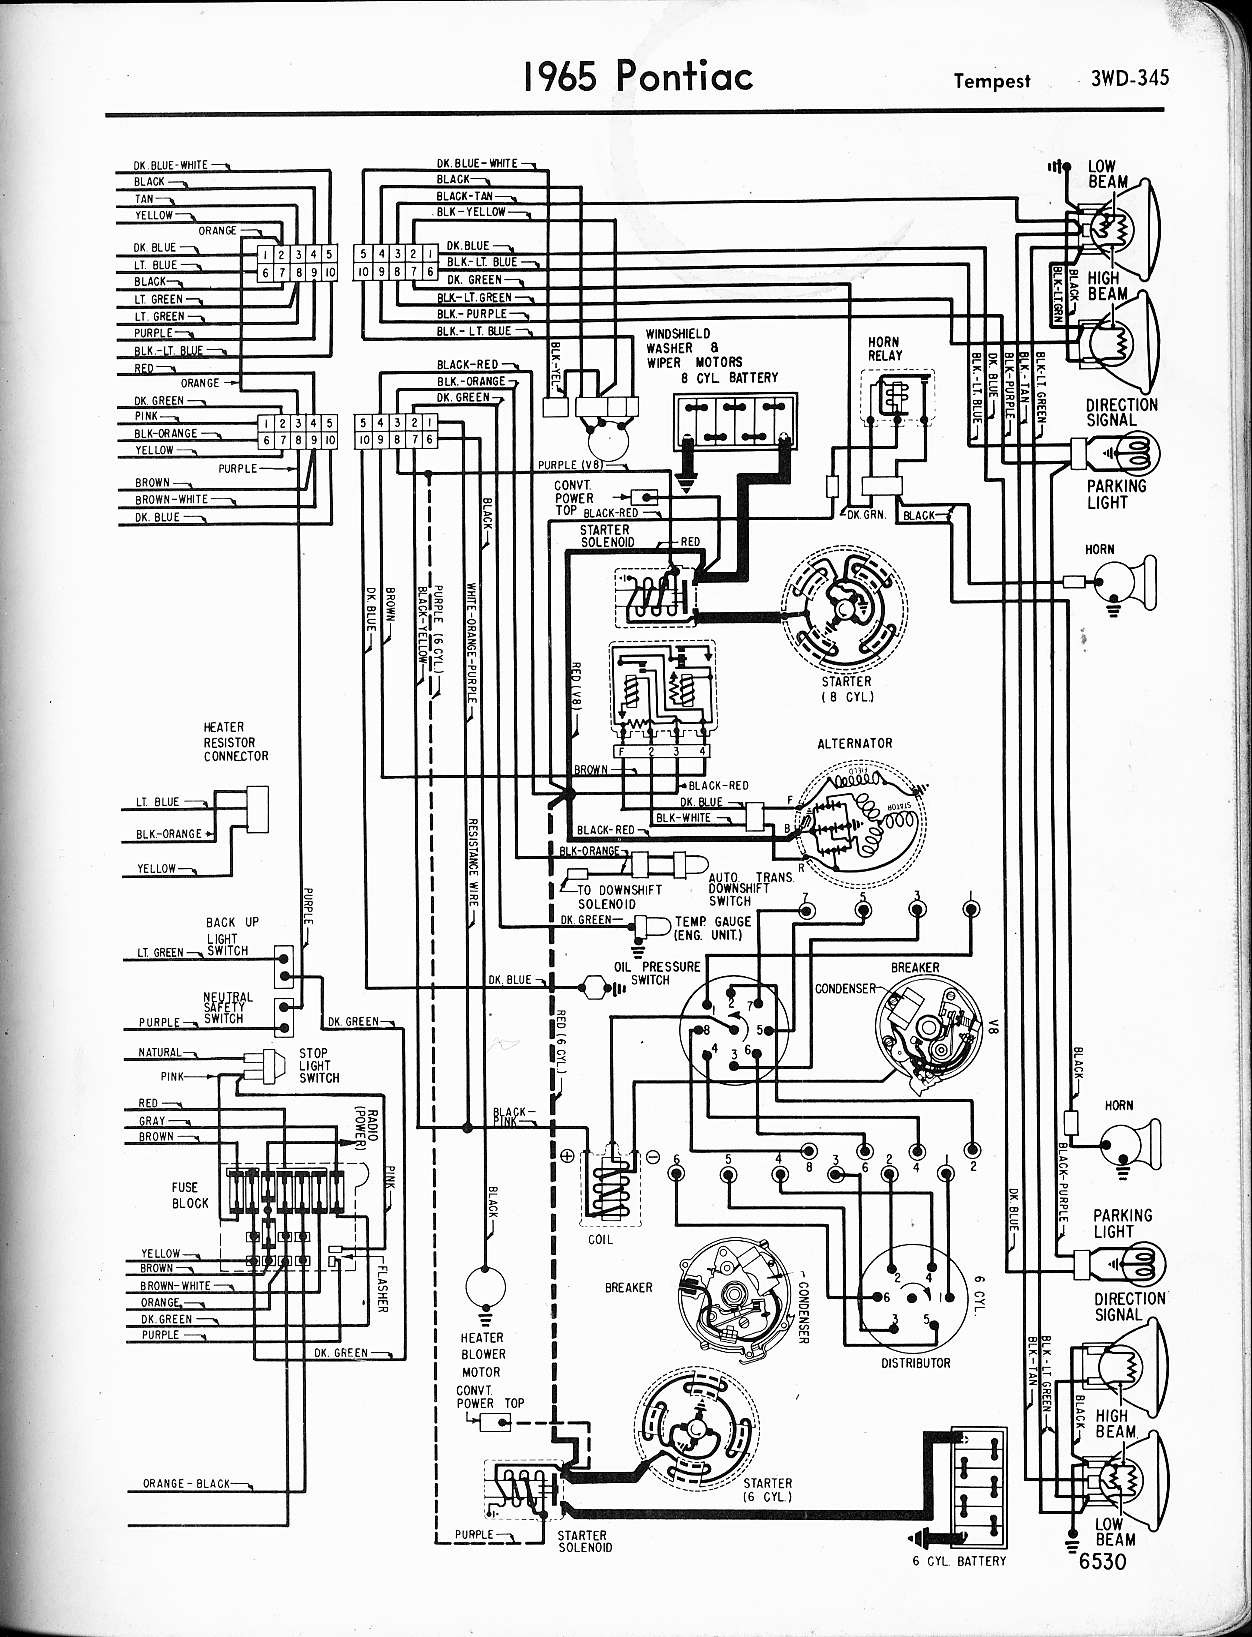 Diagram  Emg Hz H4 Wiring Diagram Full Version Hd Quality